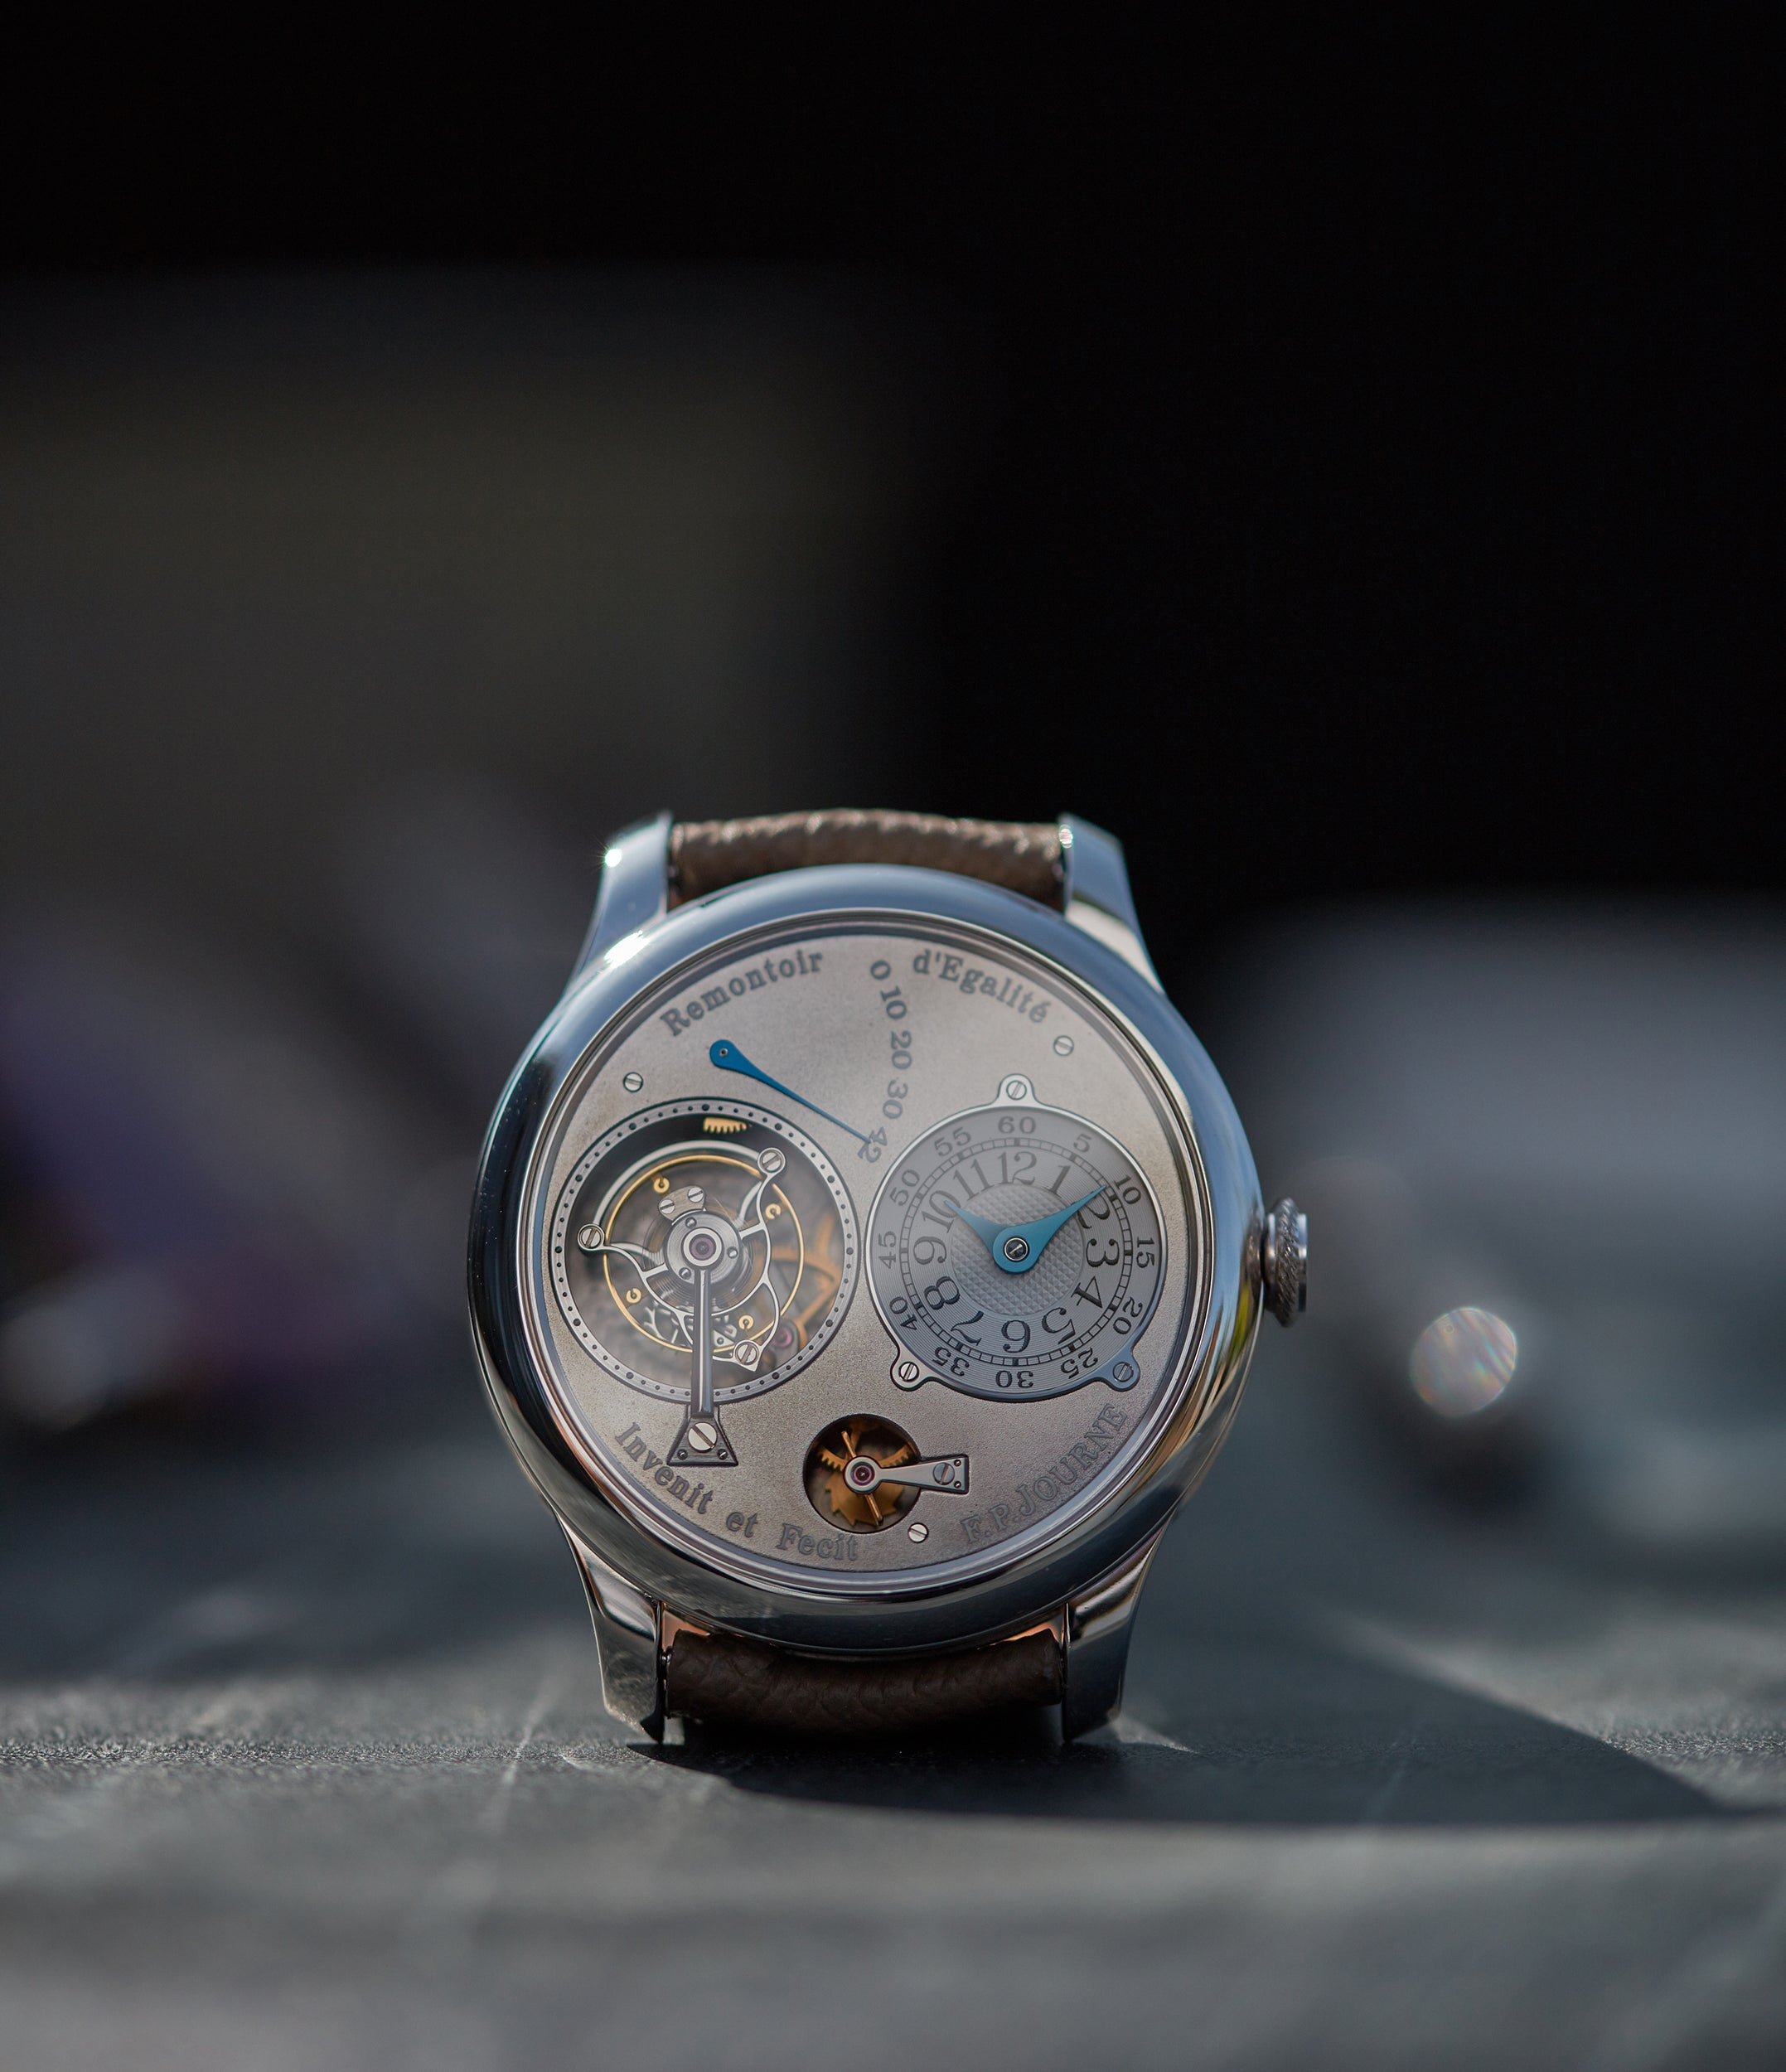 rare F. P. Journe Tourbillon Remontoire Souverain rhutenium dial brass movement pre-owned watch at A Collected Man London specialist independent watchmakers